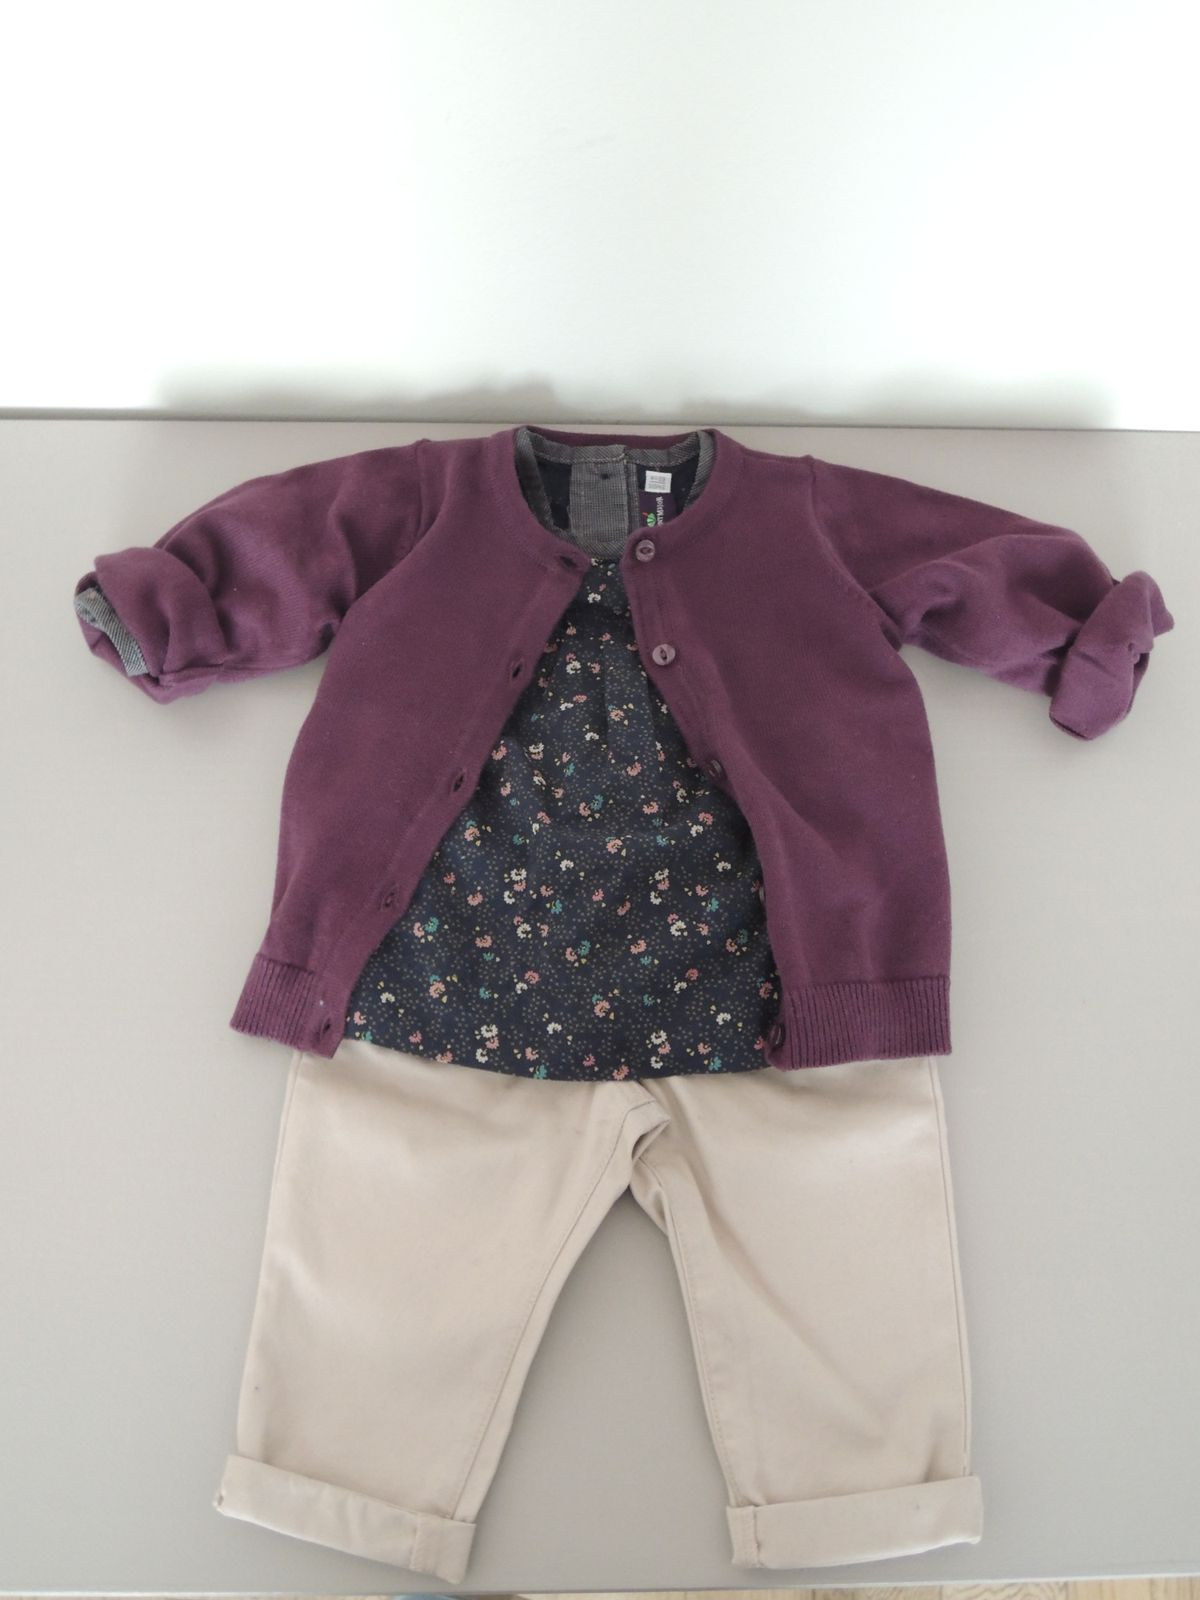 Blouse Sergent Major, Gilet violet H&M, pantalon rose pâle Bout'chou